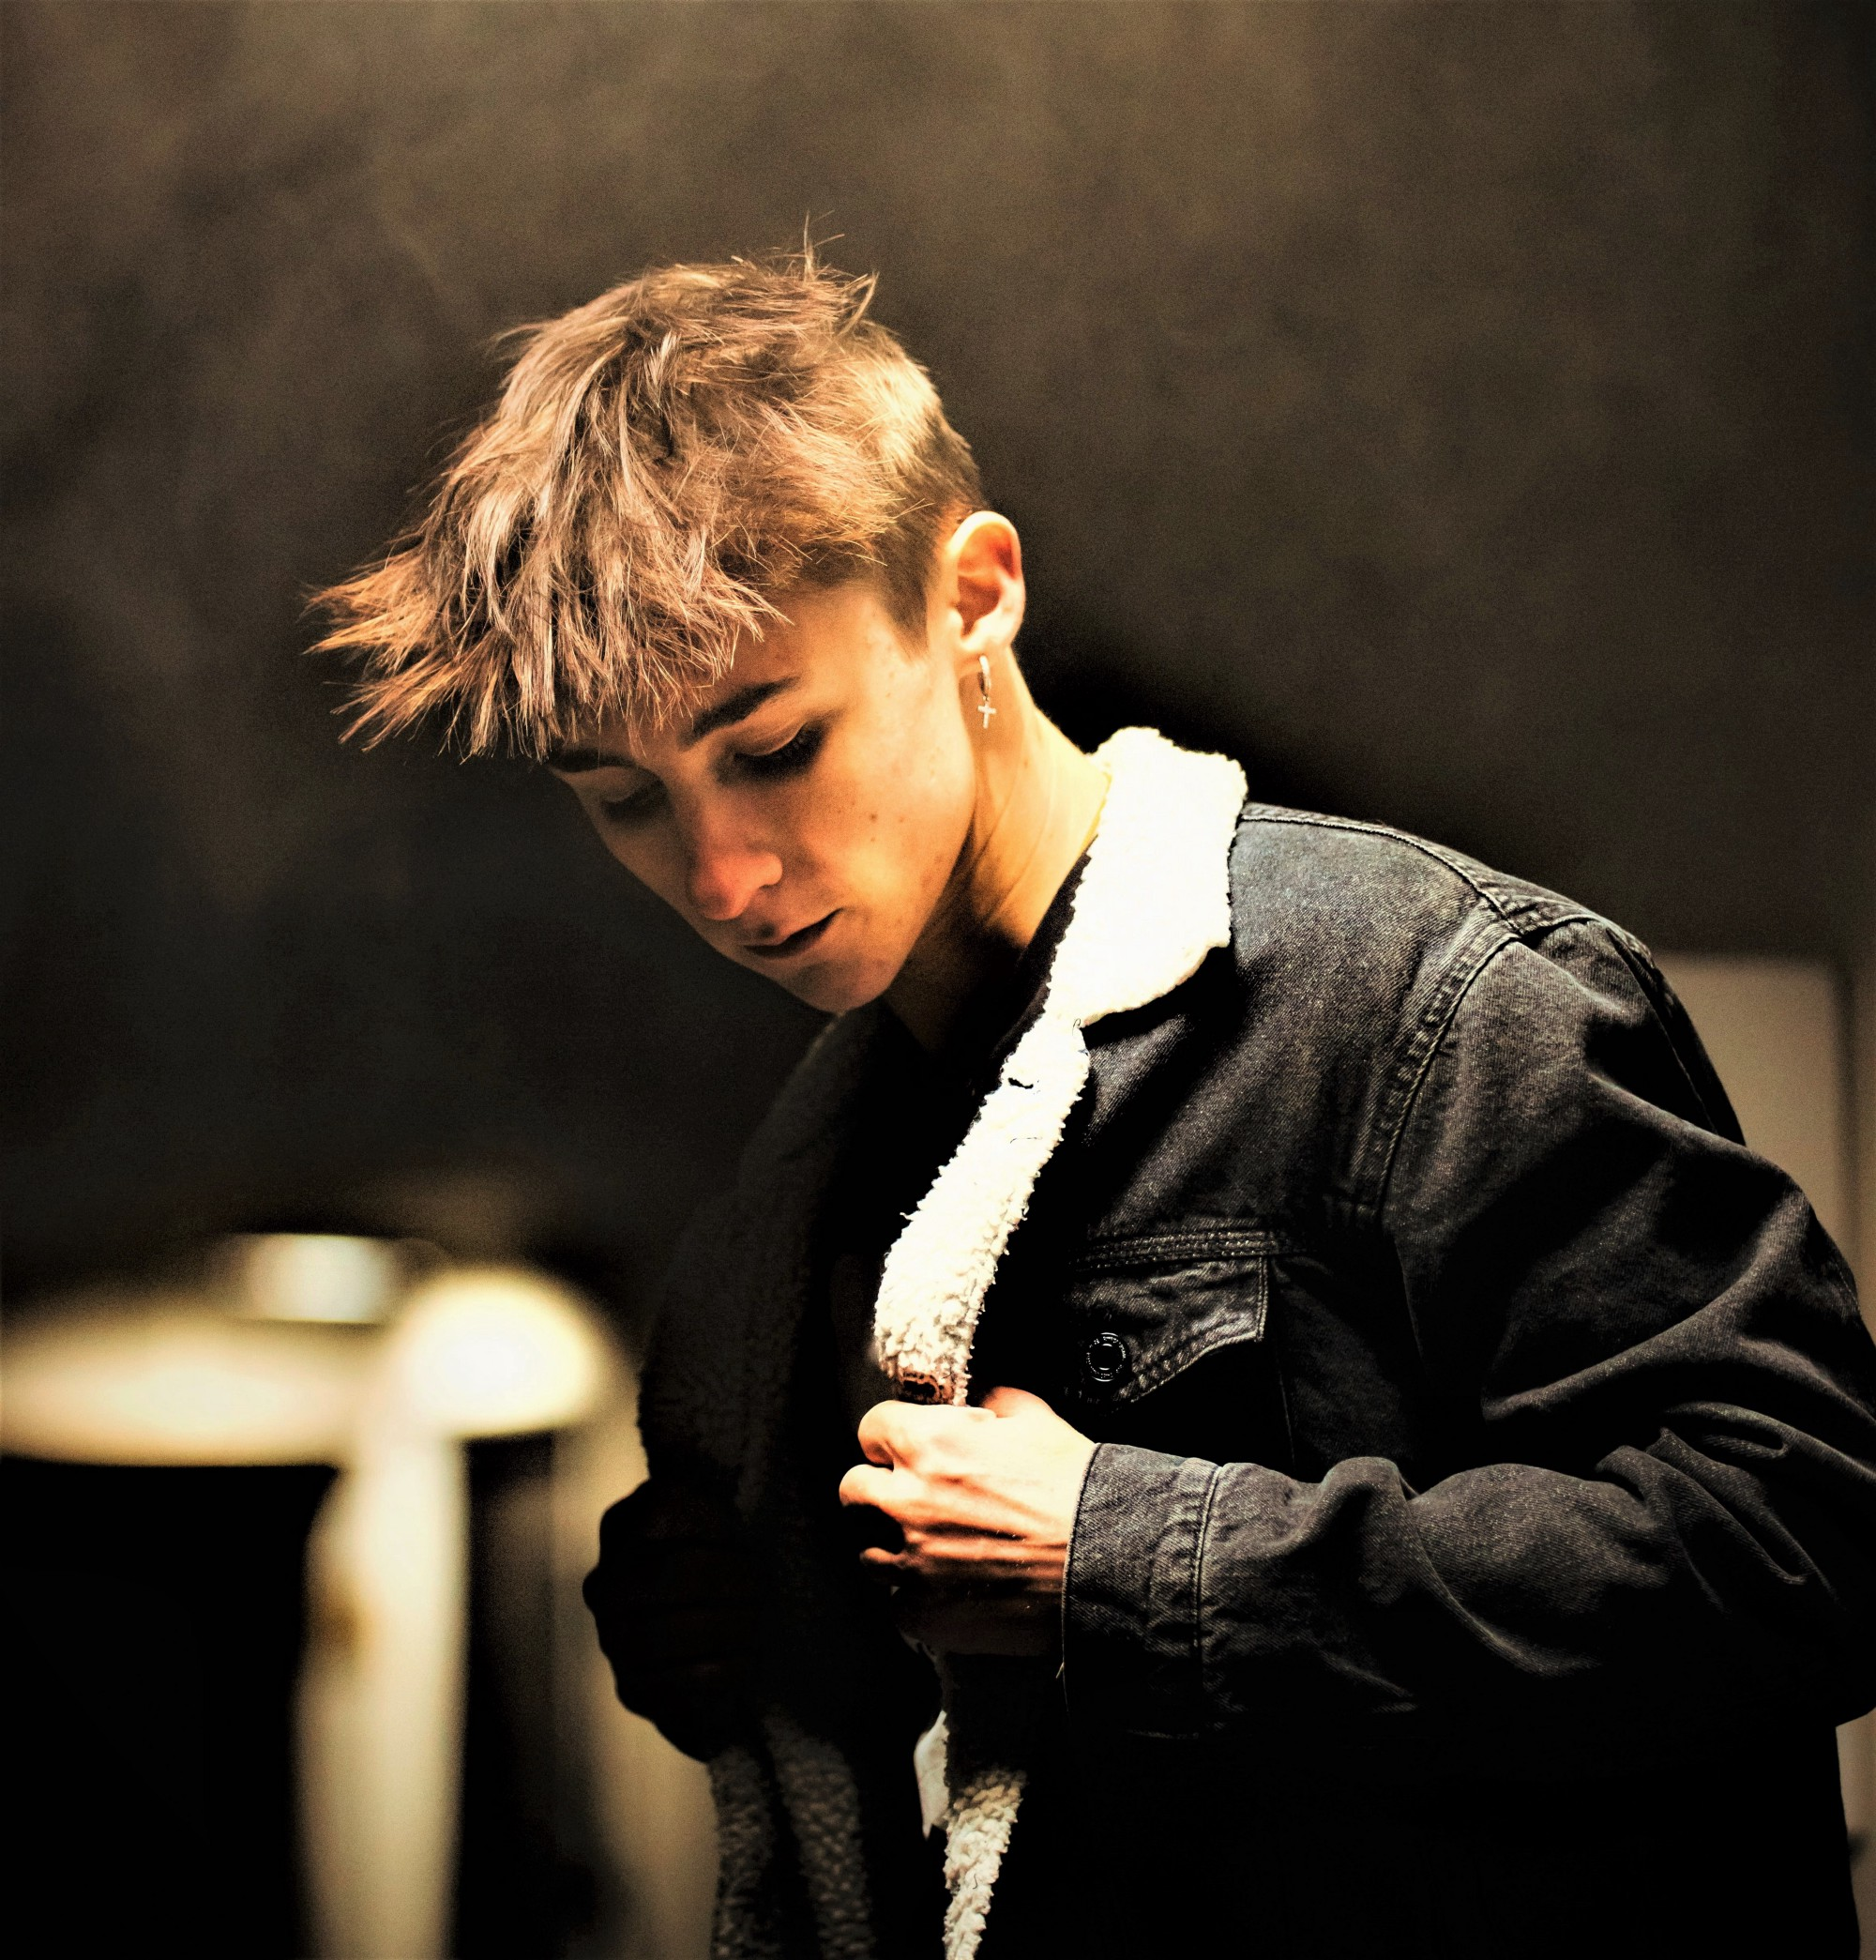 somber young man with blonde hair wearing jacket with white collar